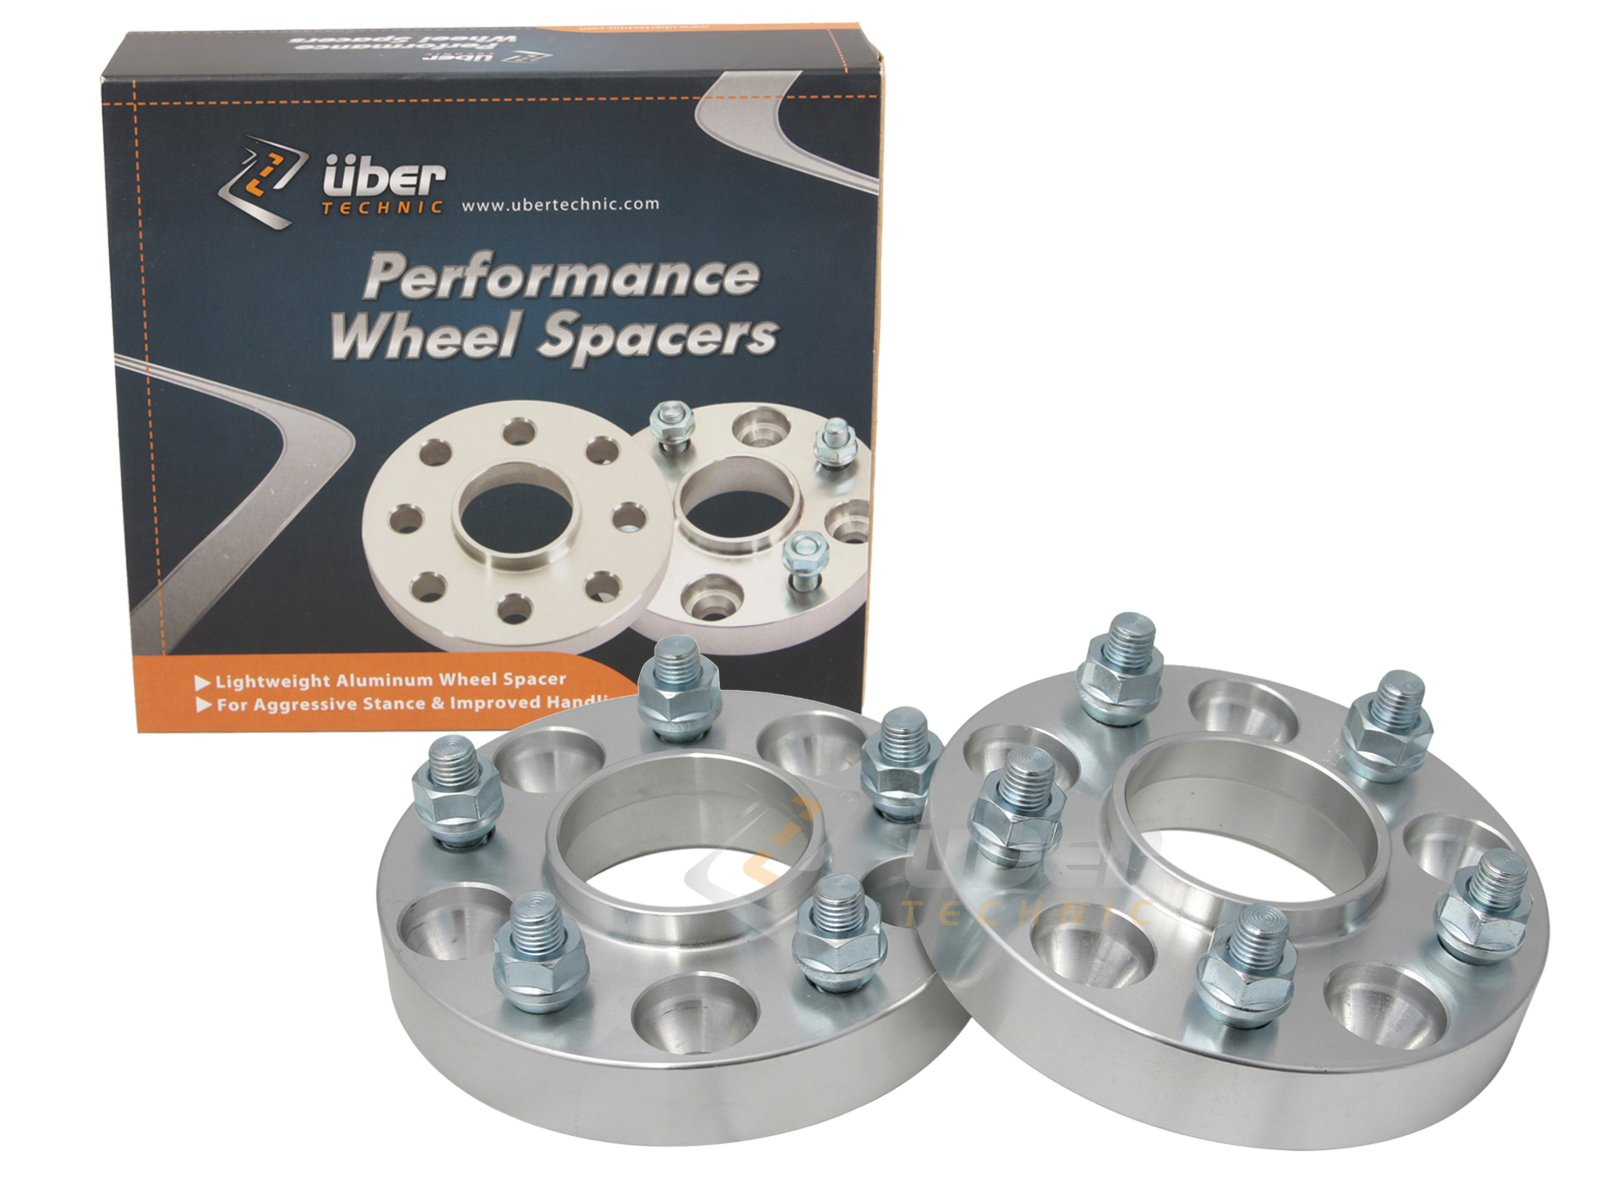 (2) 32mm (1.25'') 5x4.5 UberTechnic Hubcentric Wheel Spacers for Ford Lincoln for Mustang Edge Crown Victoria Bronco Ranger Explorer Town Car Mountaineer Aviator Edge Mark 7 (1/2'' Studs & 70.5mm bore)